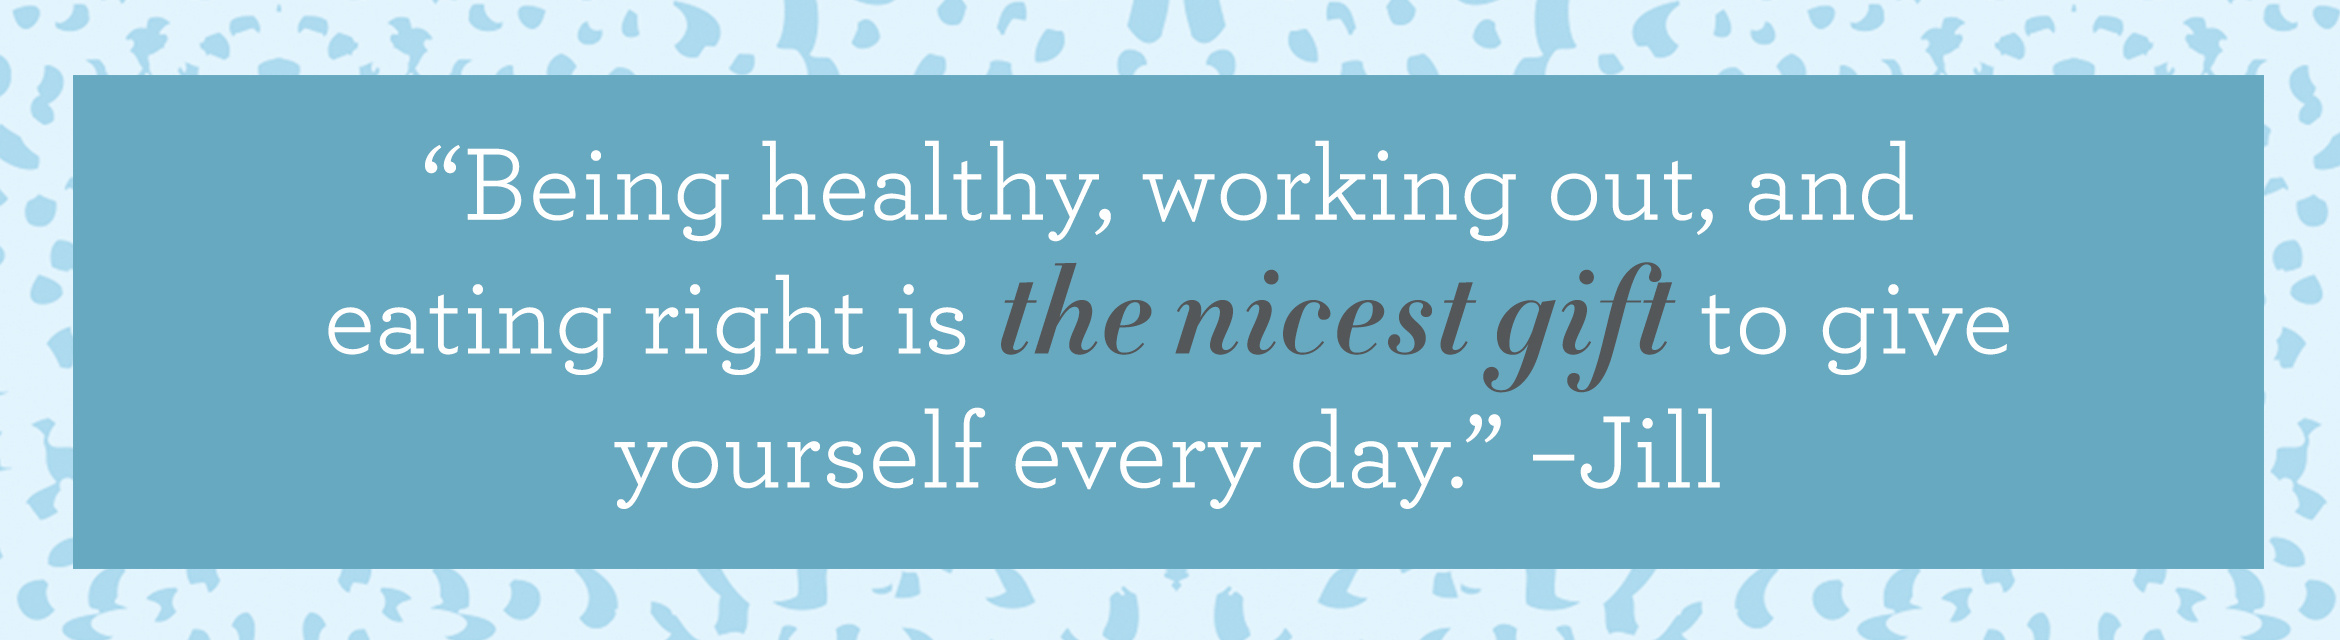 """Being healthy, working out, and eating right is the nicest gift to give yourself every day."" –Jill"